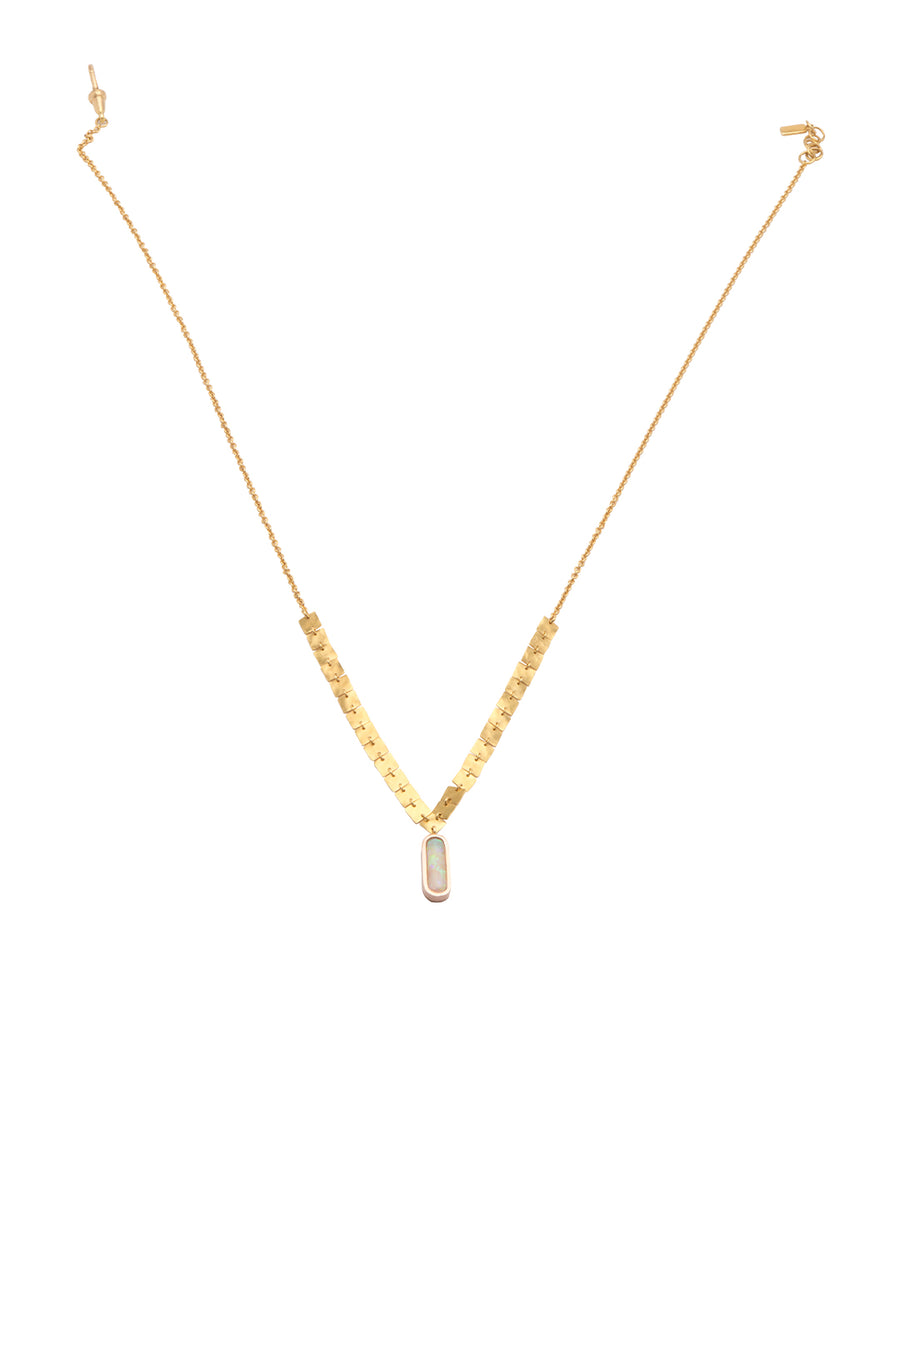 GOLD DUST FIRE OPAL NECKLACE